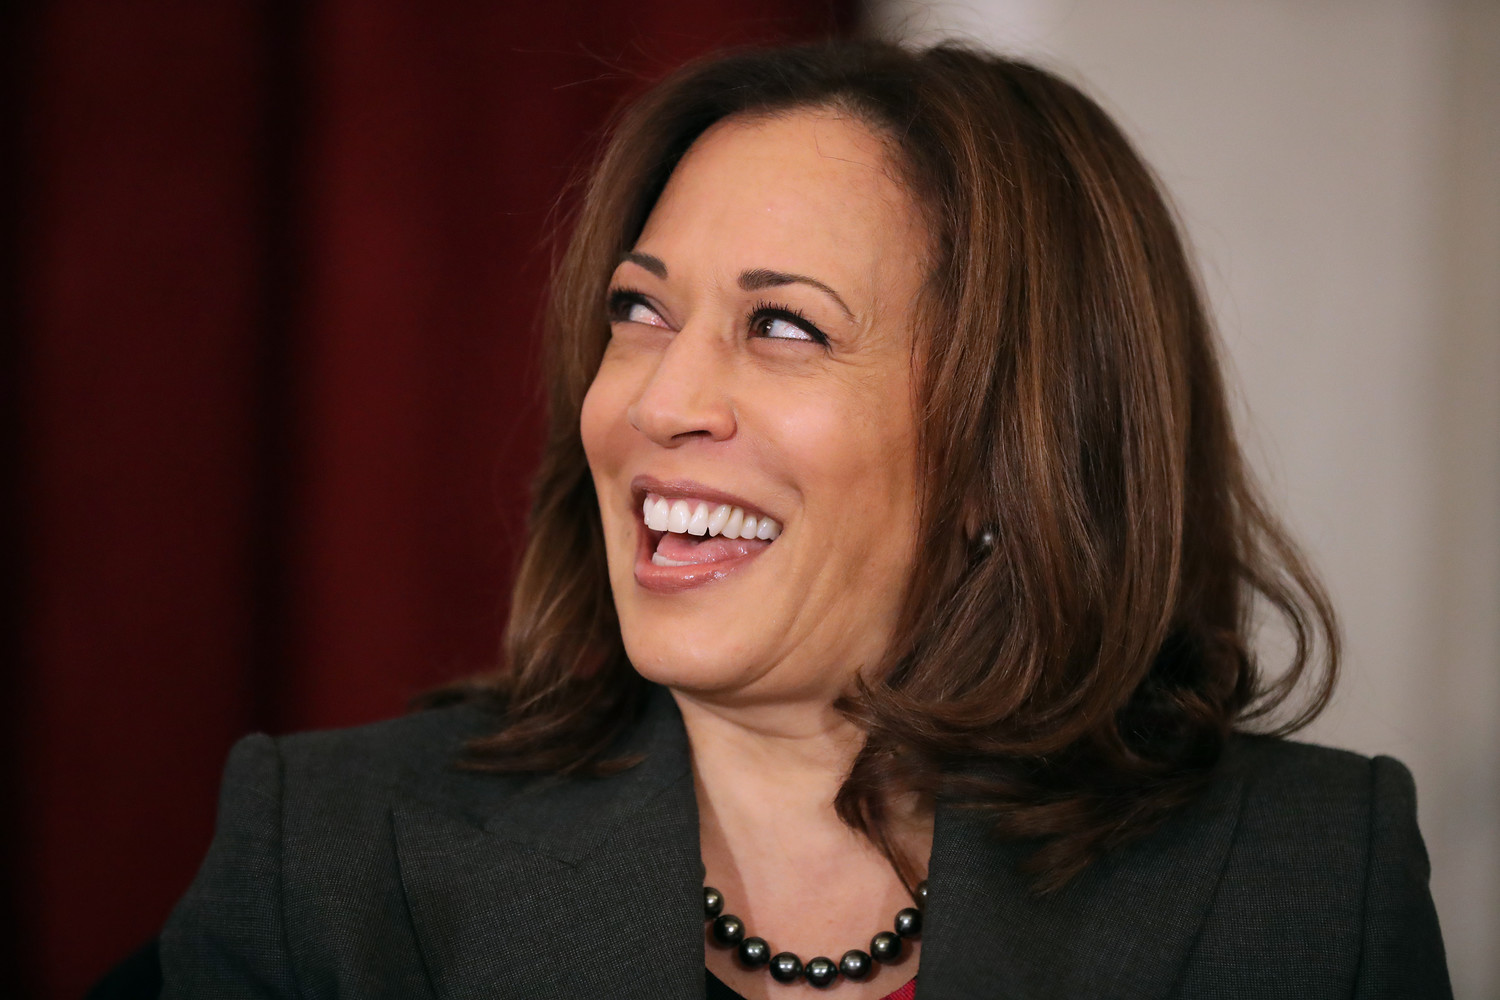 Kamala Harris, the junior senator from California, is reportedly set to announce her bid for the Democratic presidential nod.